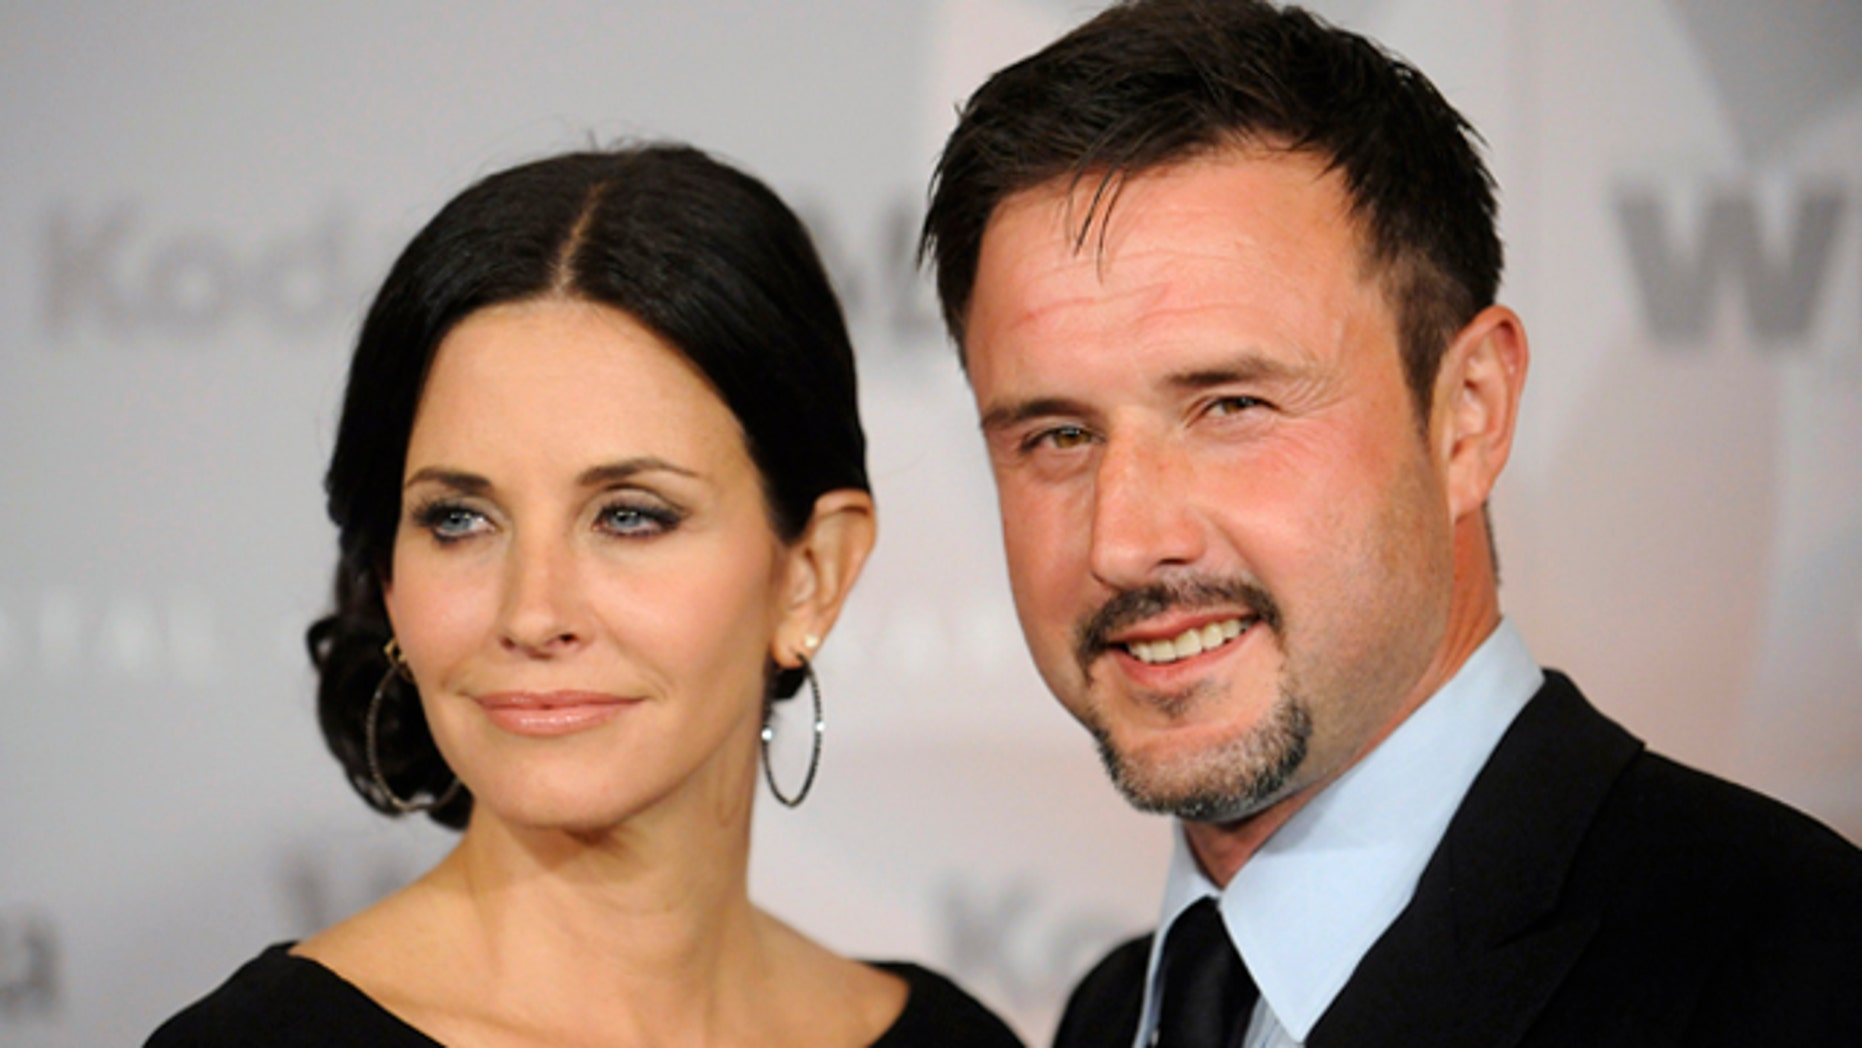 Courteney Cox and her estranged husband, David Arquette, who filed for divorce earlier this year.